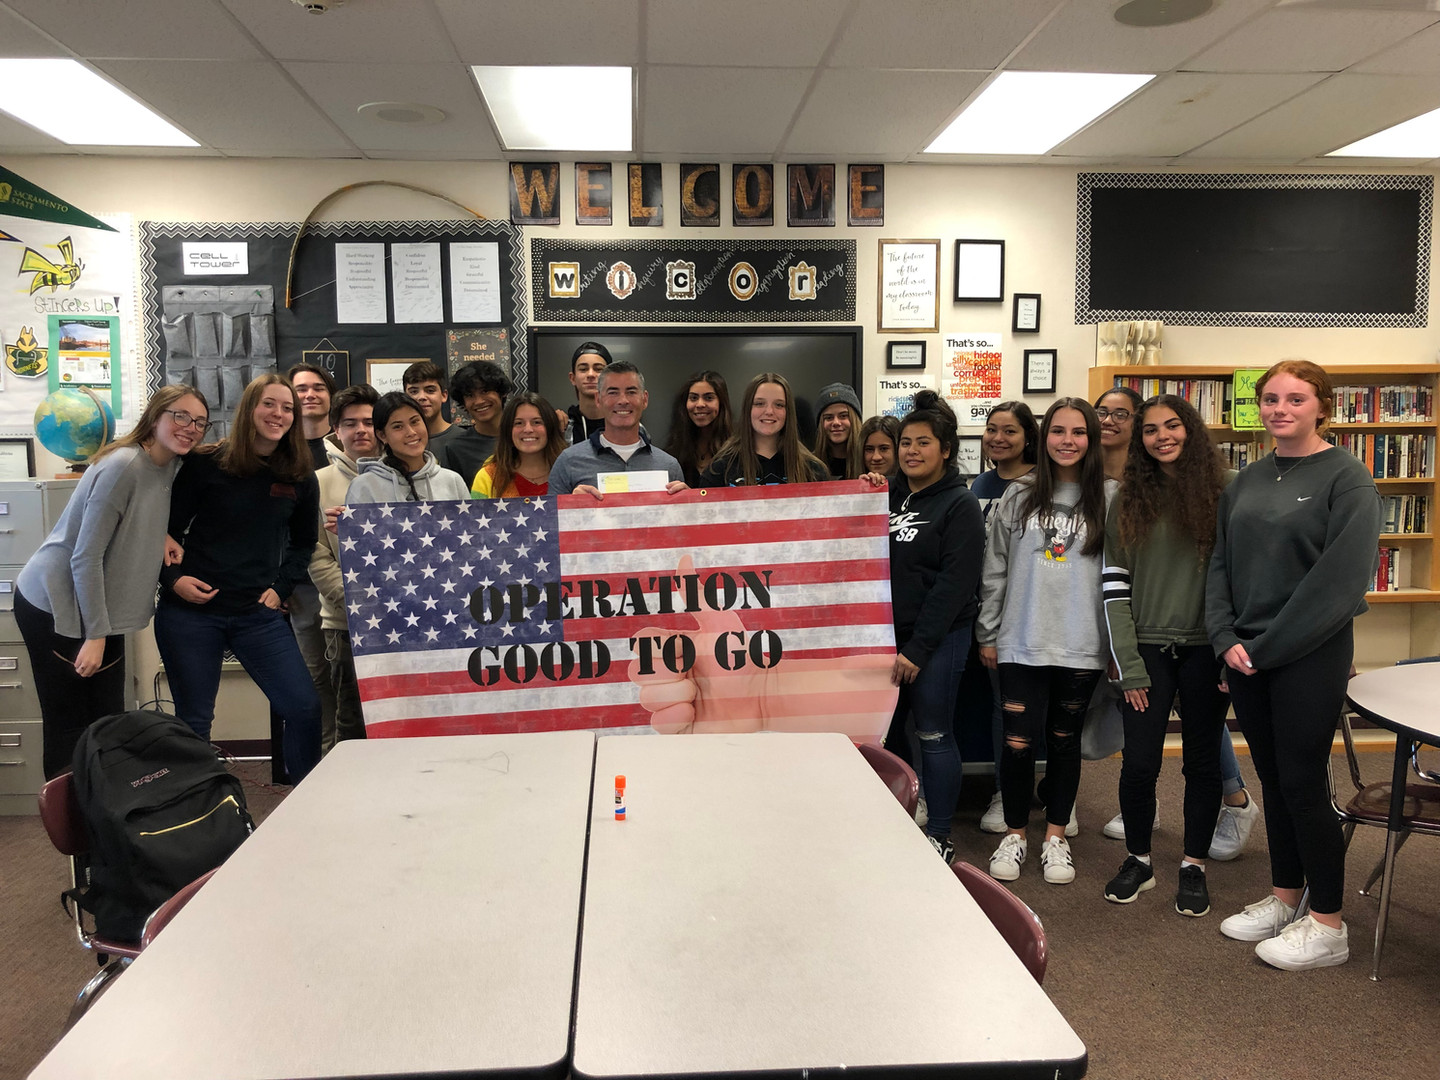 Union Mine High School   Operation Good To Go project